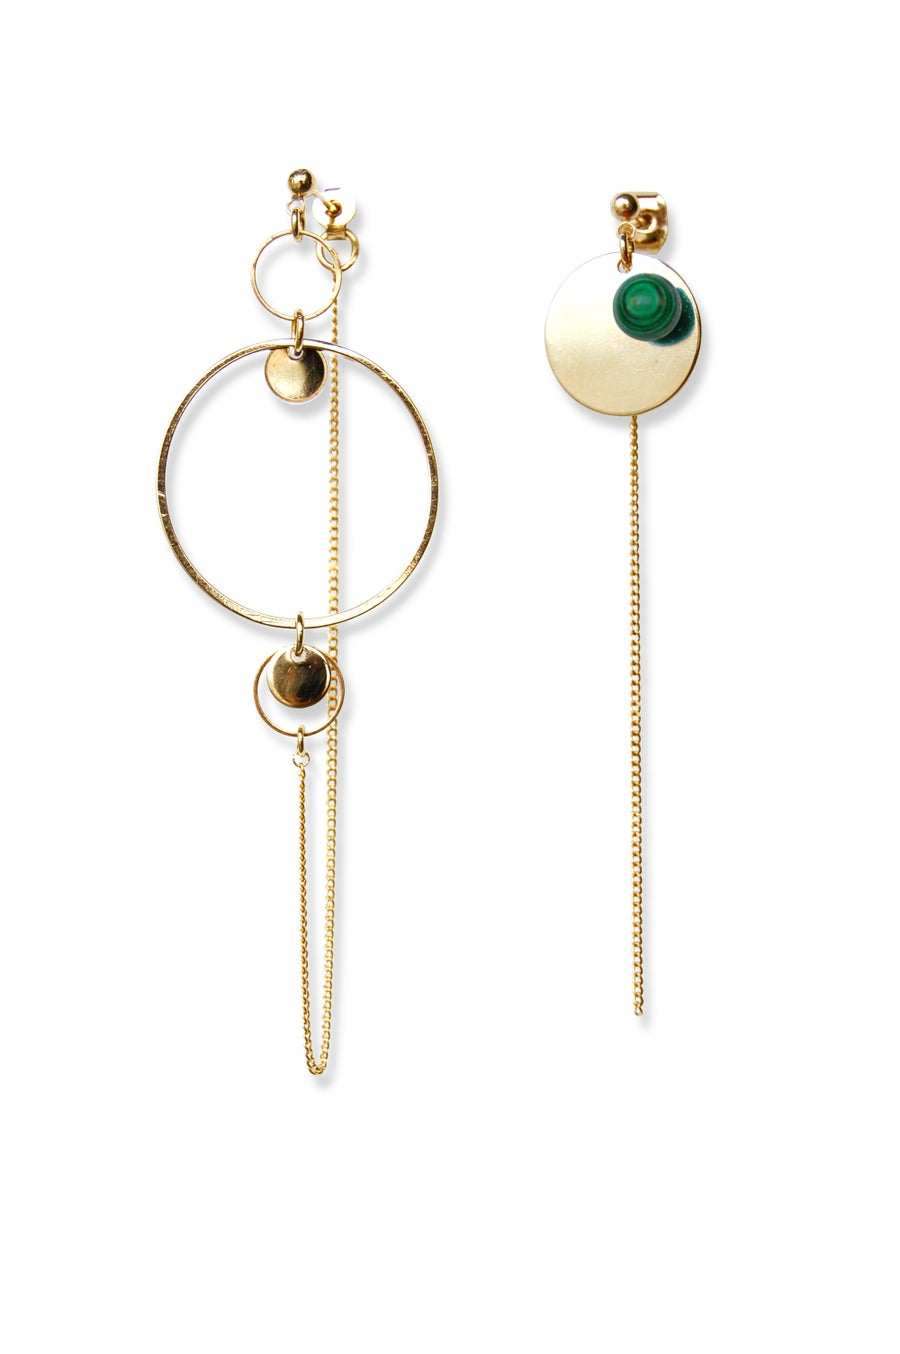 Image of Boucles d'oreilles BUBBLE CERCLE